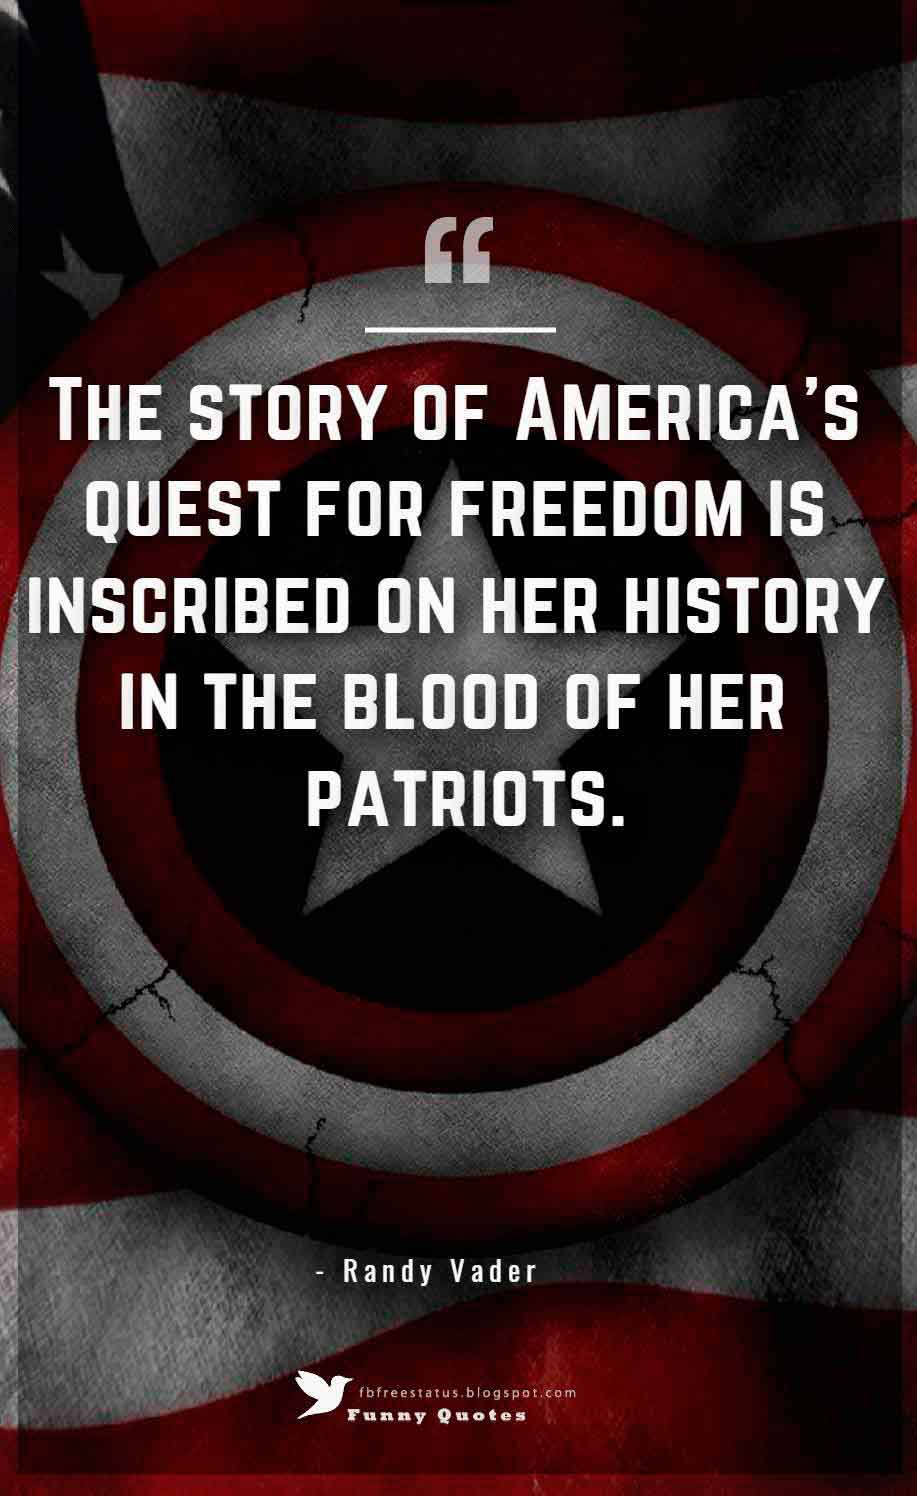 The story of America's quest for freedom is inscribed on her history in the blood of her patriots. ― Randy Vader